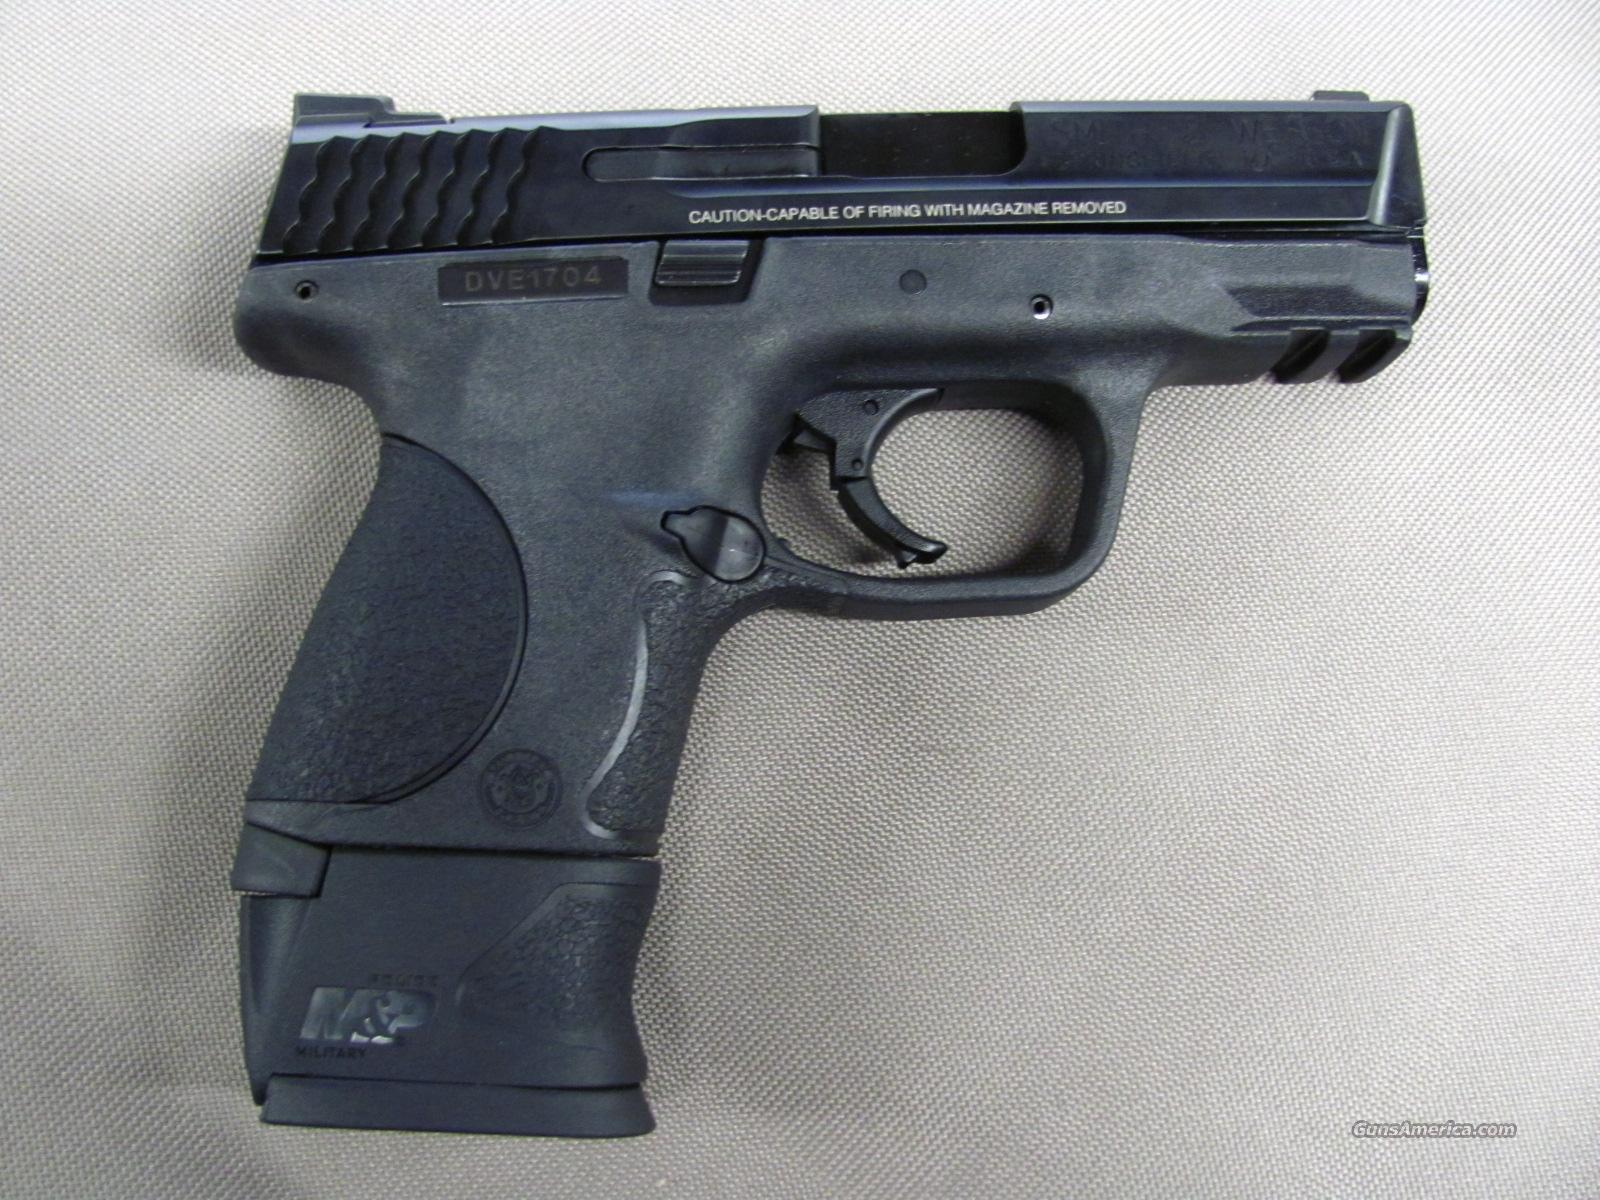 Smith & Wesson M&P 40c Talo 40 S&W With XGRIP ... for sale